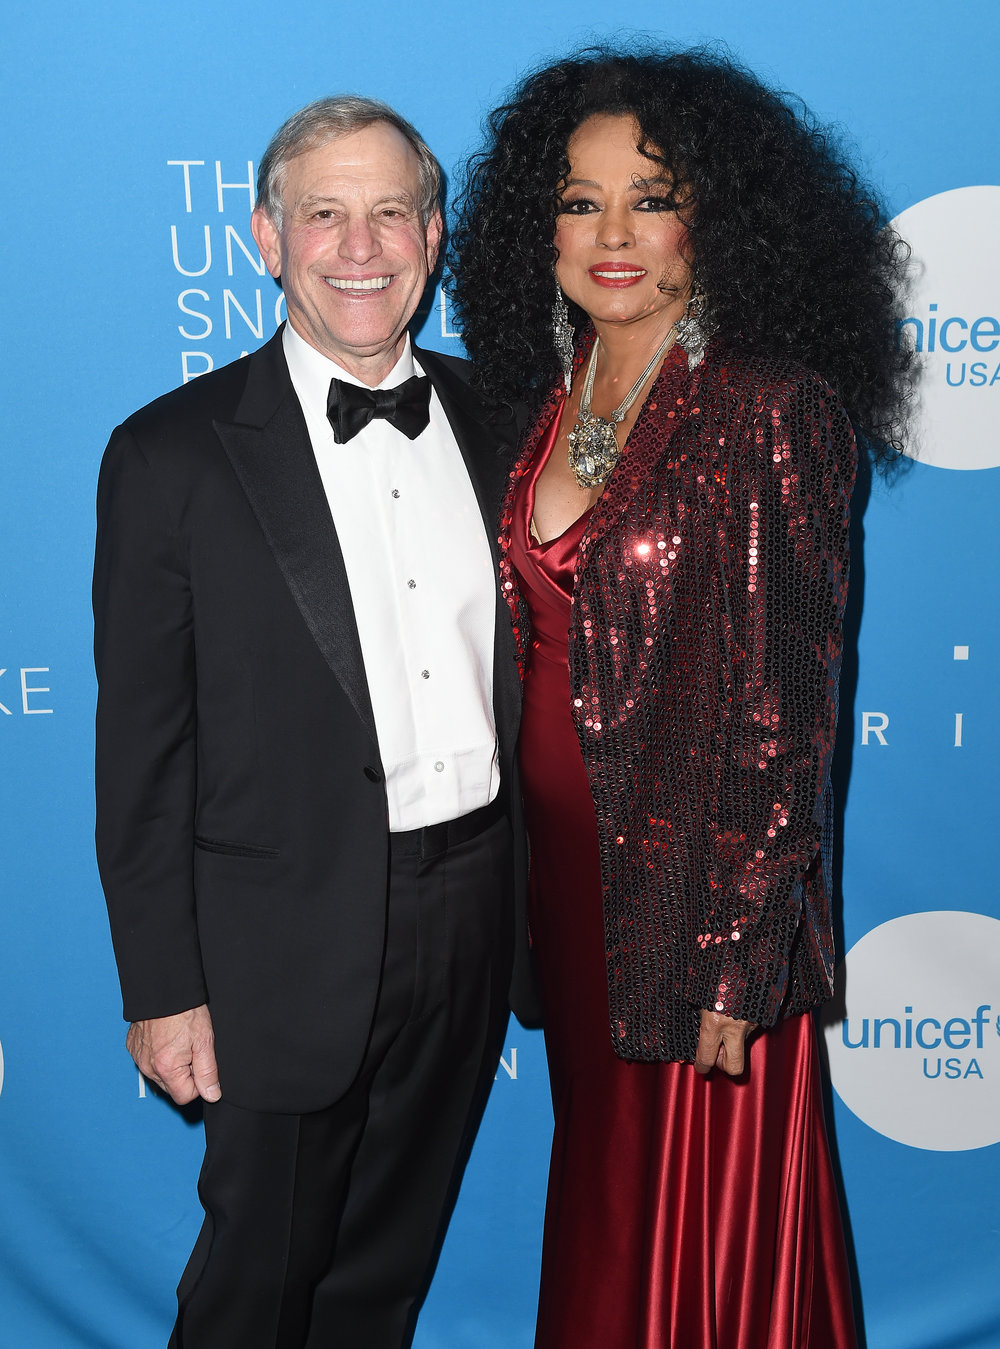 Peter Lamm and Diana Ross attend the 13th Annual UNICEF Snowflake Ball 2017 at Cipriani Wall Street on November 28, 2017 in New York City. (Photo by Nicholas Hunt/Getty Images for UNICEF)